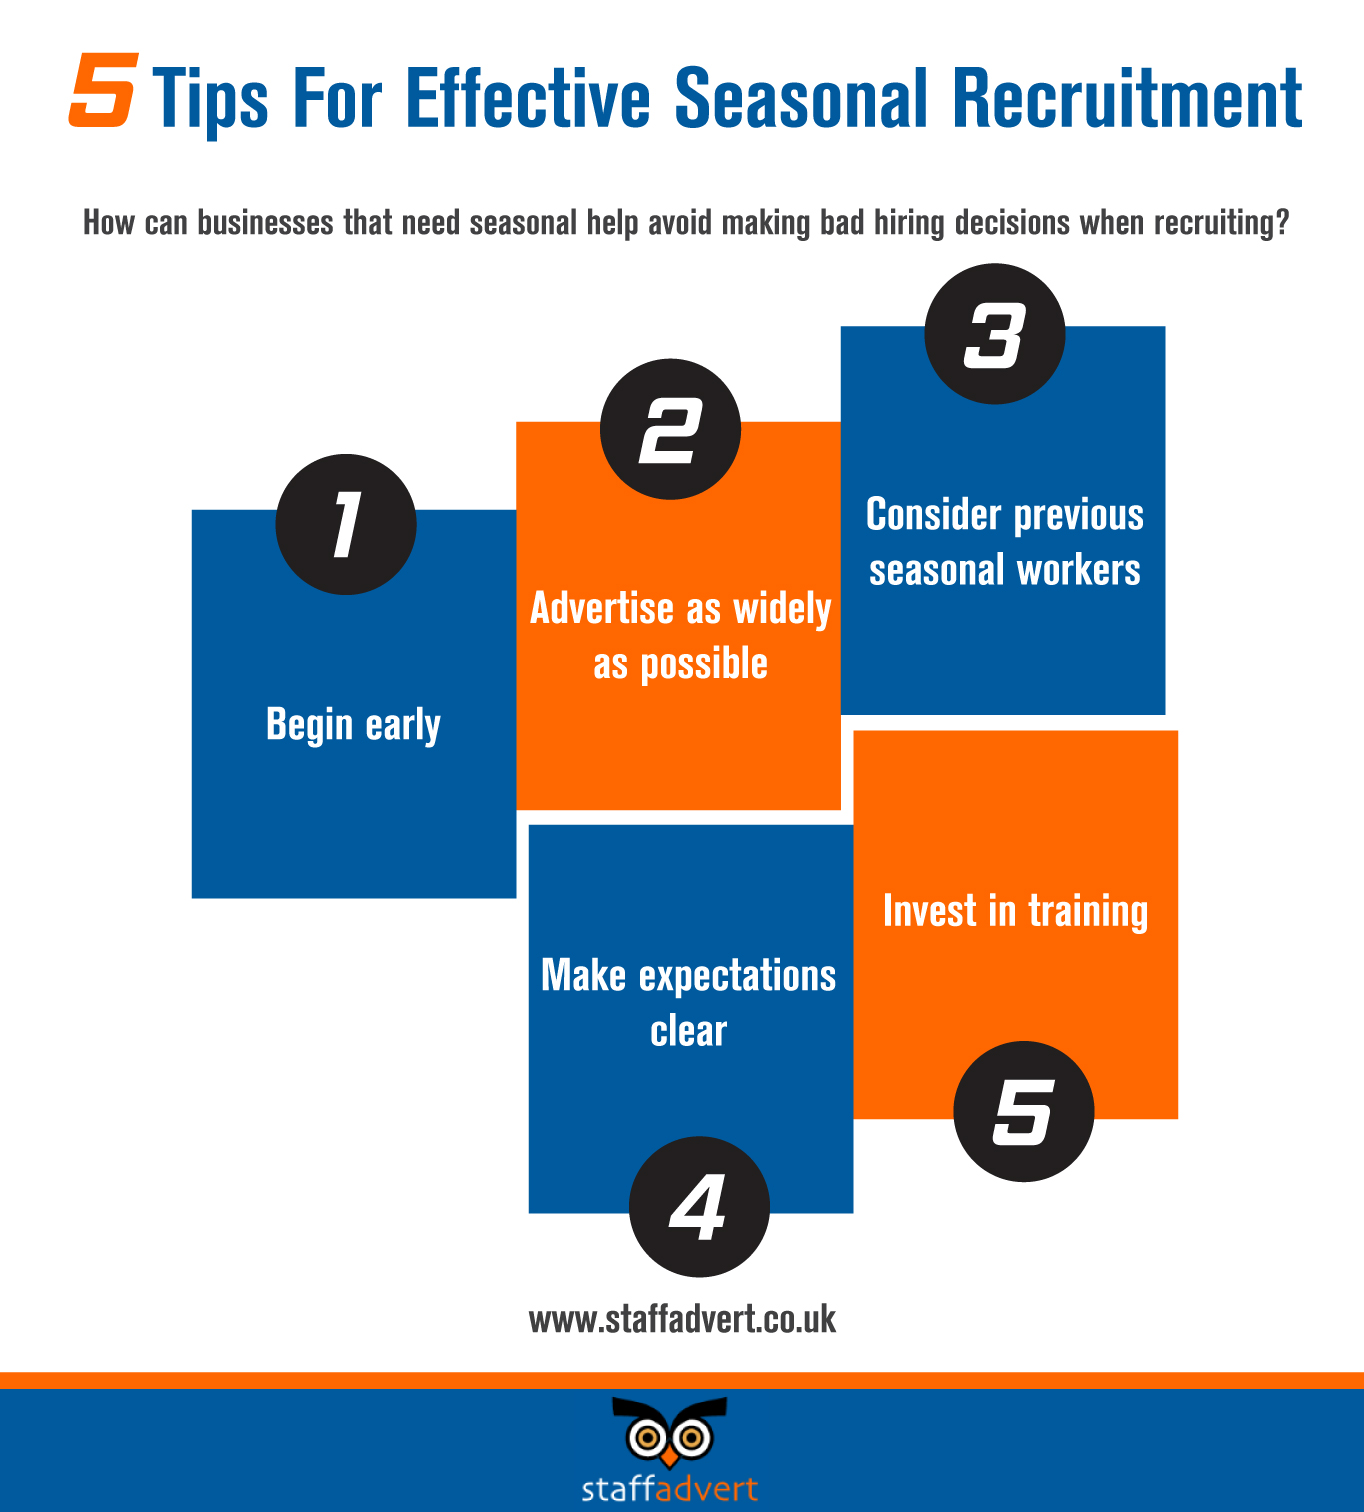 5 tips for seasonal recruitment